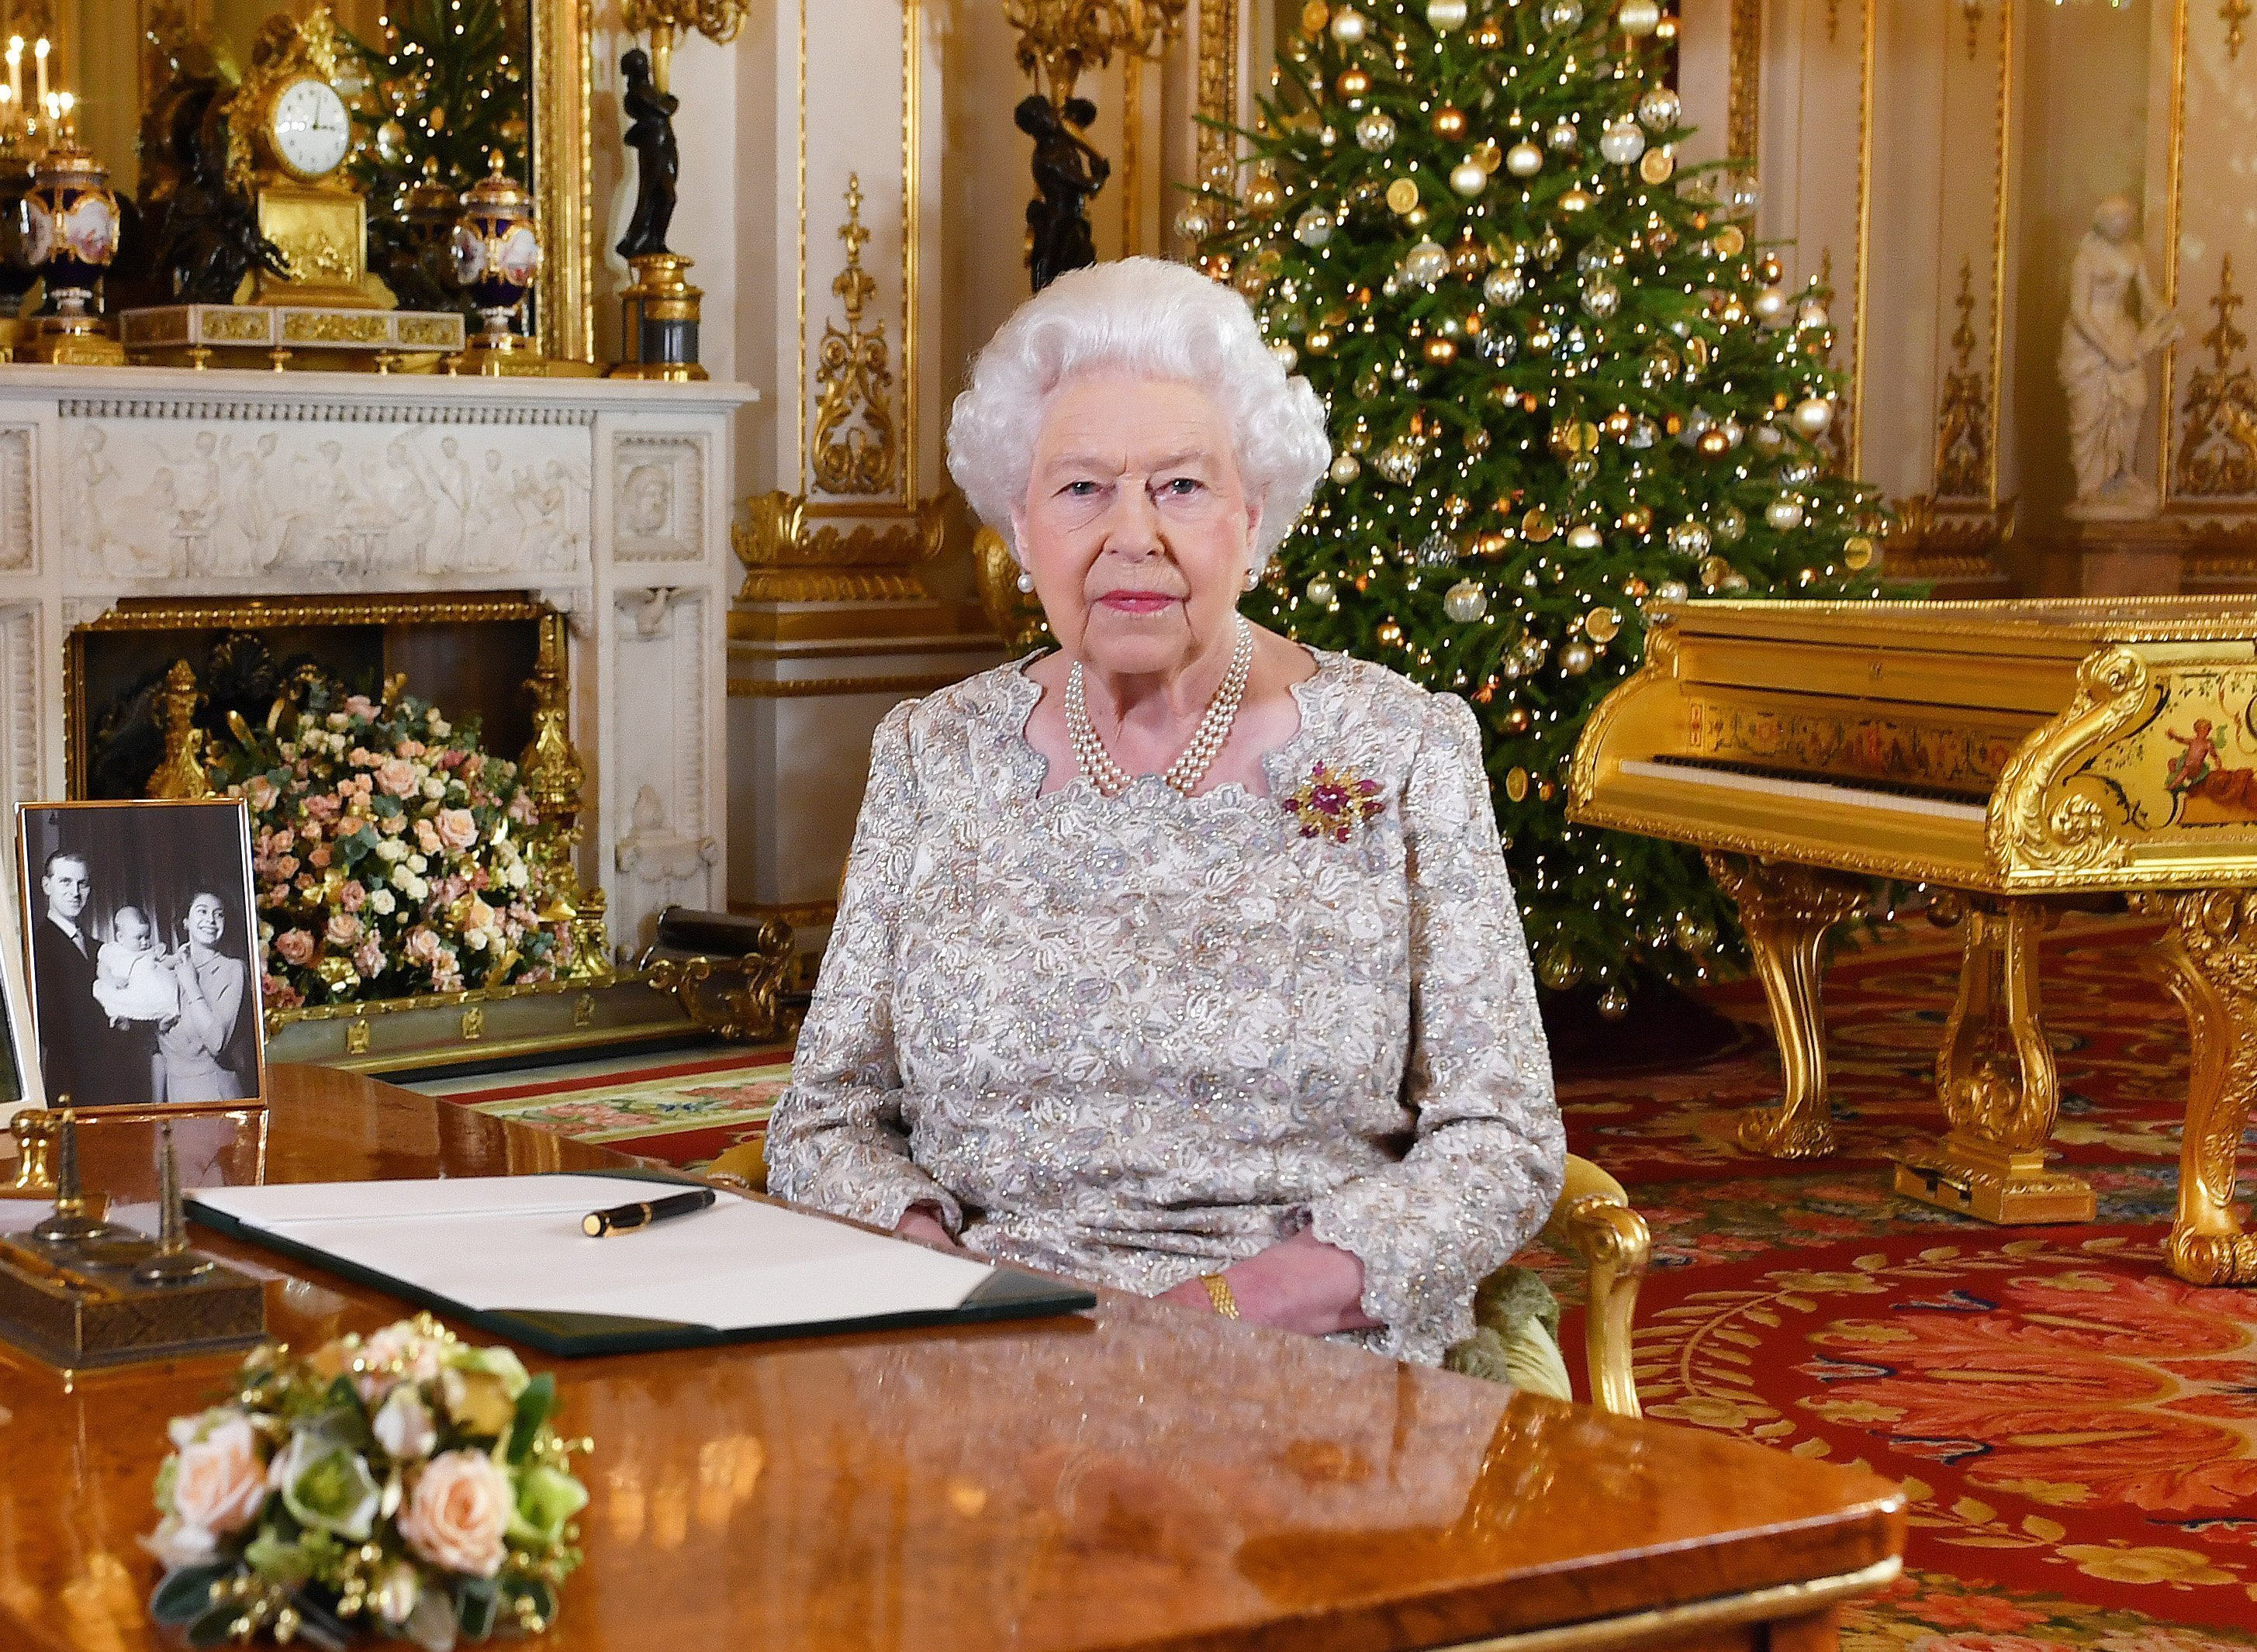 La reine Elizabeth II pose pour une photo après avoir enregistré son message annuel de Noël, dans le White Drawing Room de Buckingham Palace dans une photo publiée le 24 décembre 2018 à Londres. | Photo : Getty Images